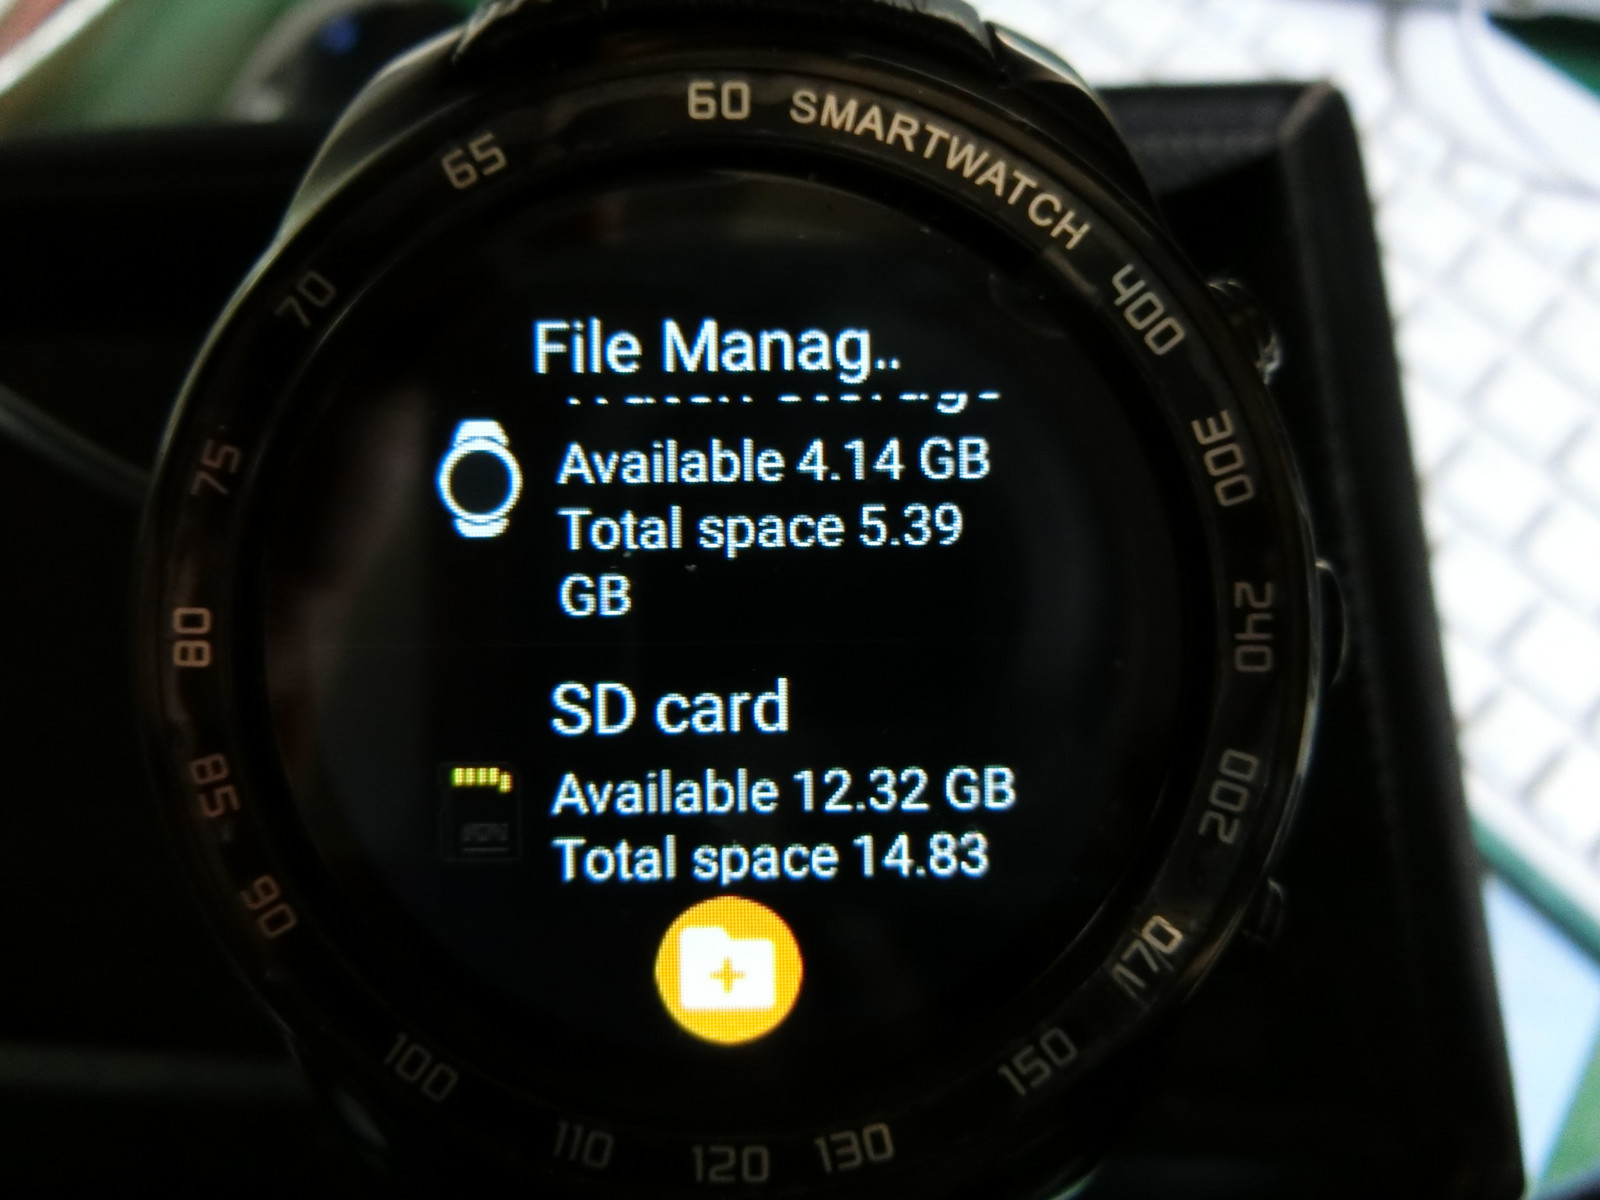 Finow_q7_plus_file_manager